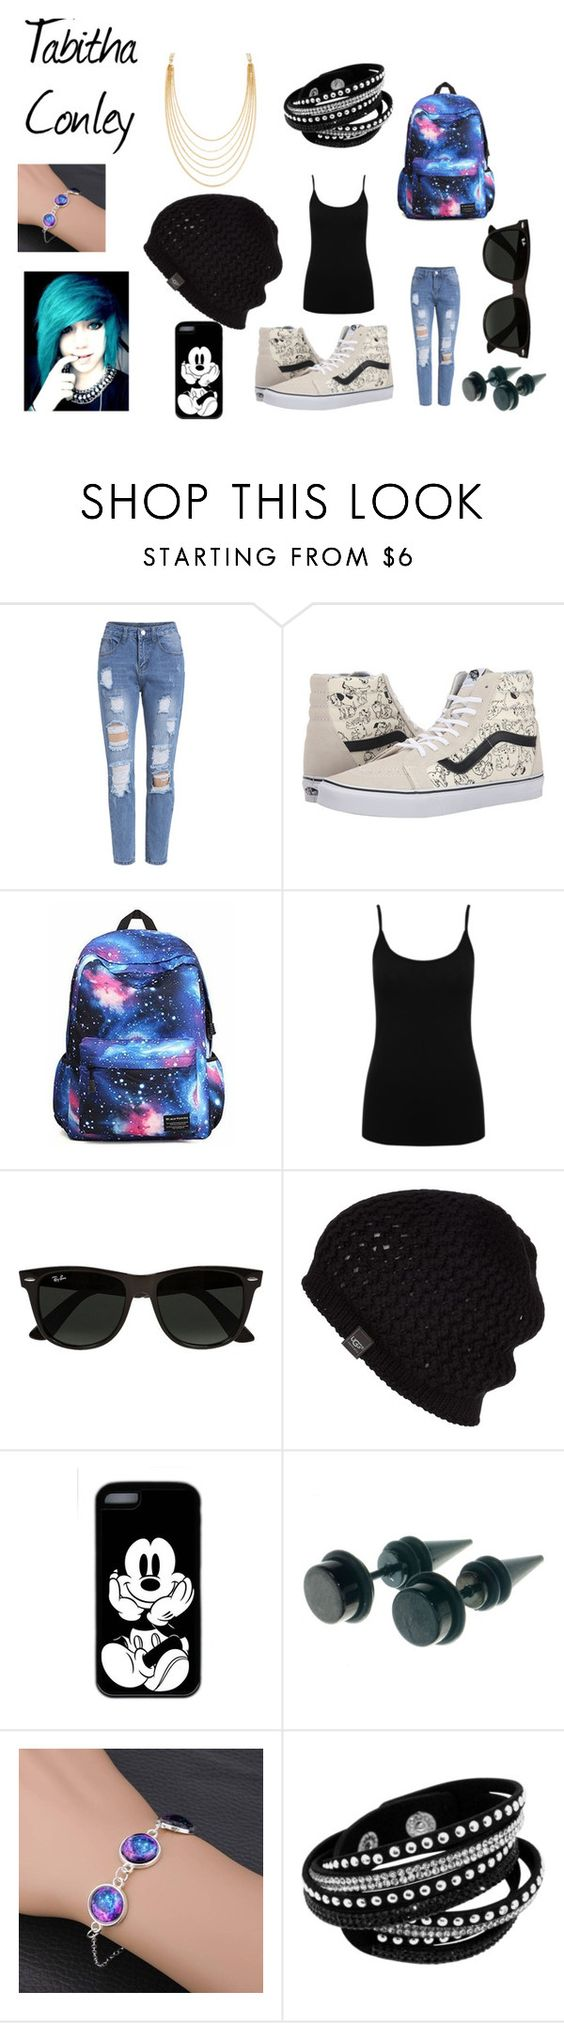 tabitha conely by brianna bryant ❤ liked on polyvore featuring tabitha conely by brianna bryant ❤ liked on polyvore featuring vans m co